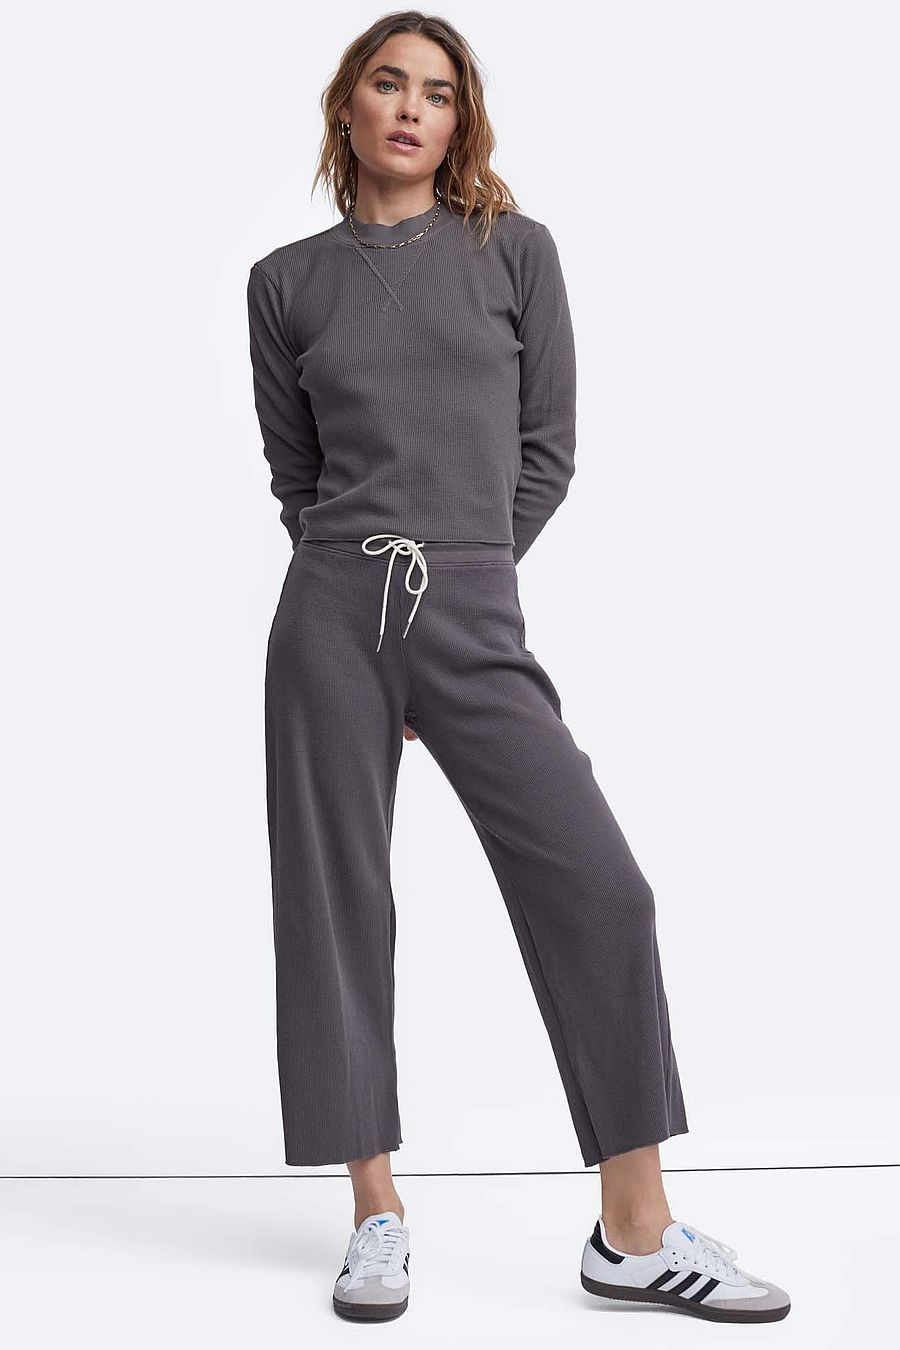 MATE The Label Organic Thermal Wide Leg Pant - CHARCOAL